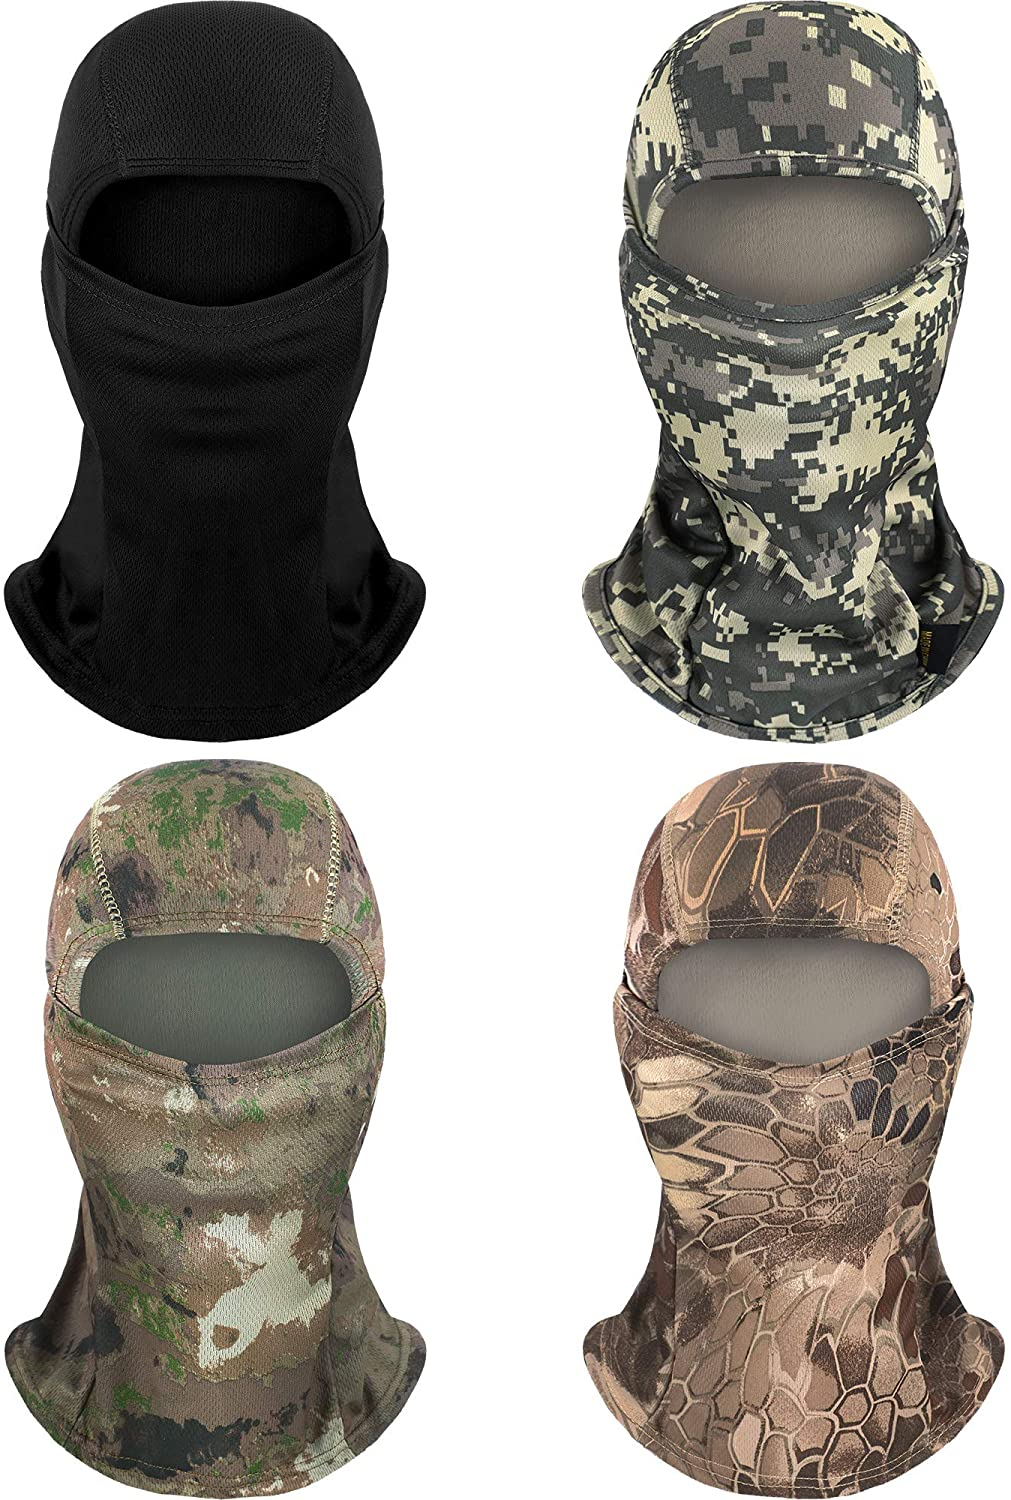 4 Pieces Summer Balaclava Face Mask UV Protection Mask Breathable Full Face Cover for Sun Protection